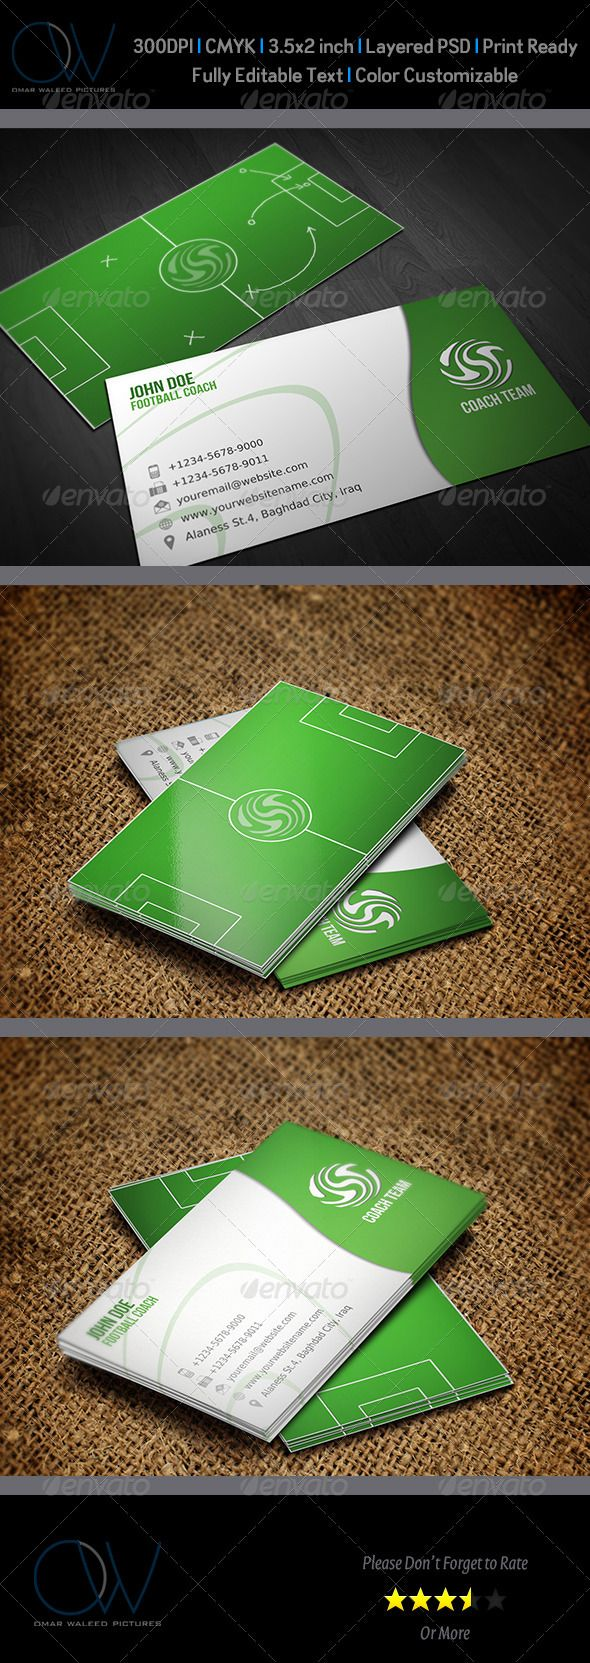 120 best business card images on pinterest fonts business cards football coach business card magicingreecefo Gallery